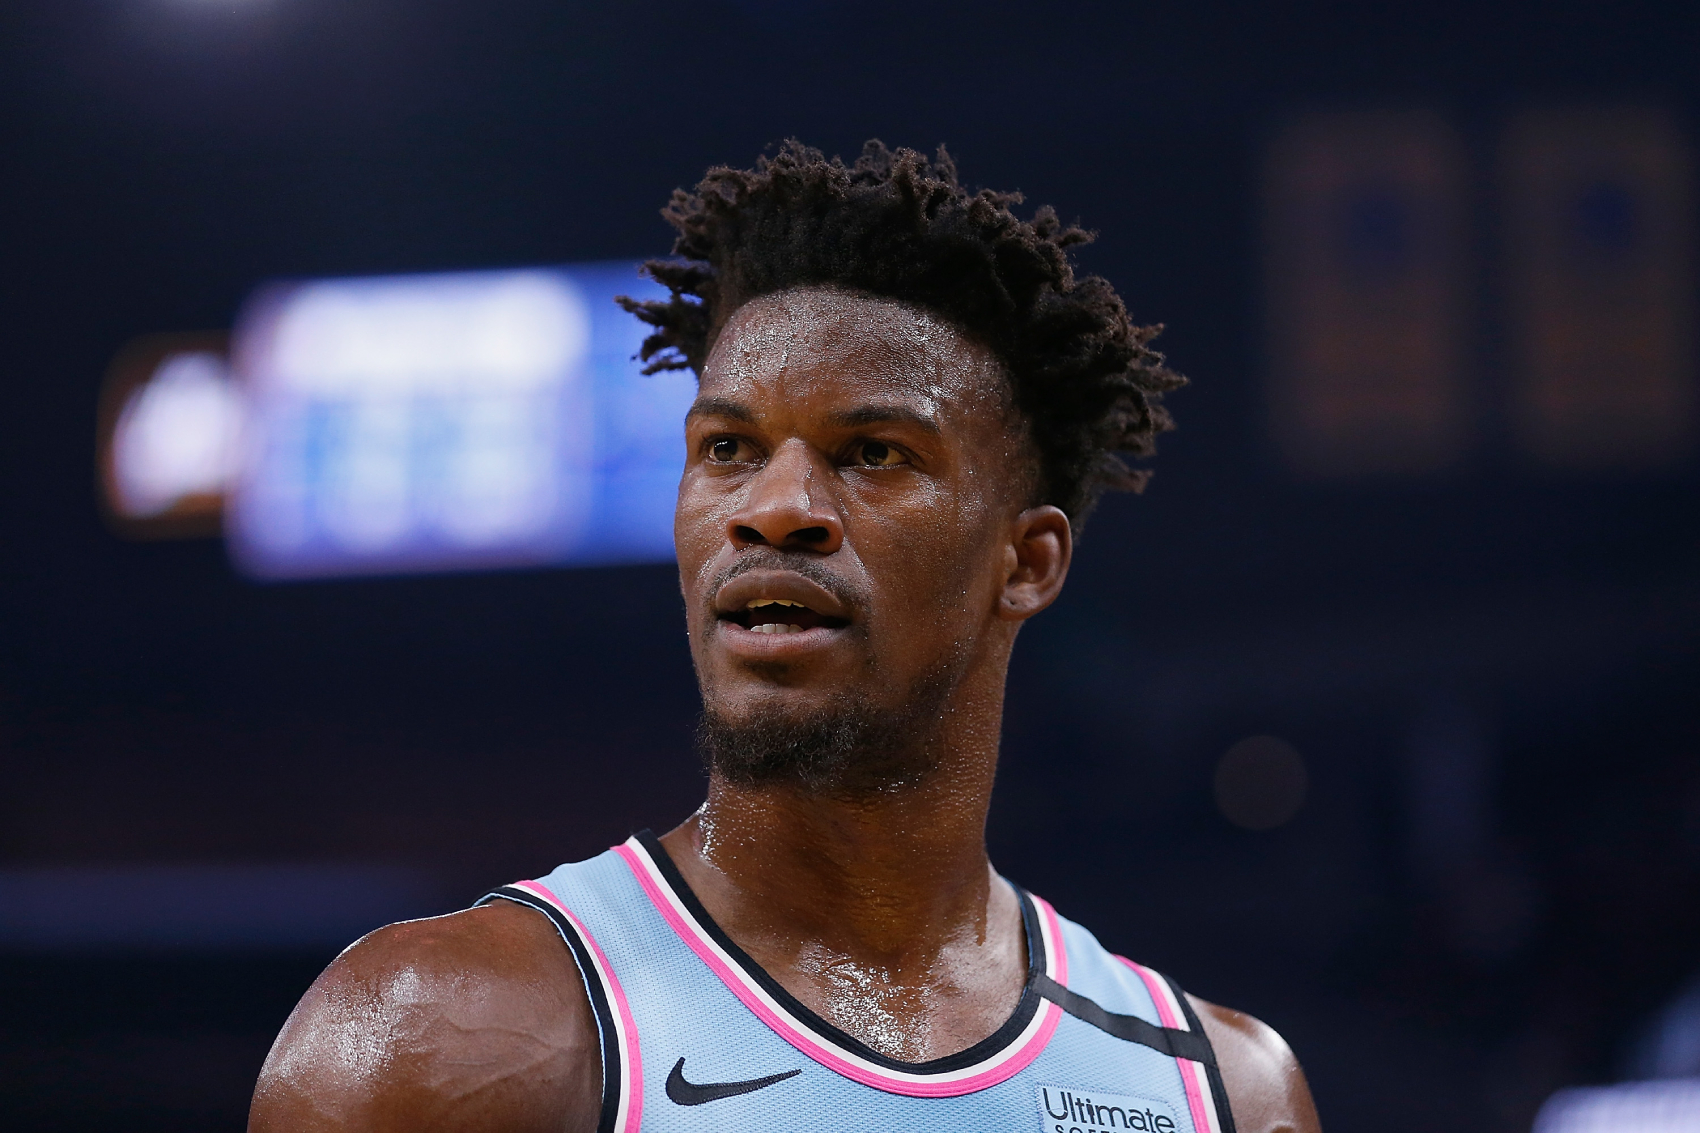 The Miami Heat and Oklahoma City Thunder had a close game recently, and Jimmy Butler had a strong message for Chris Paul afterward.